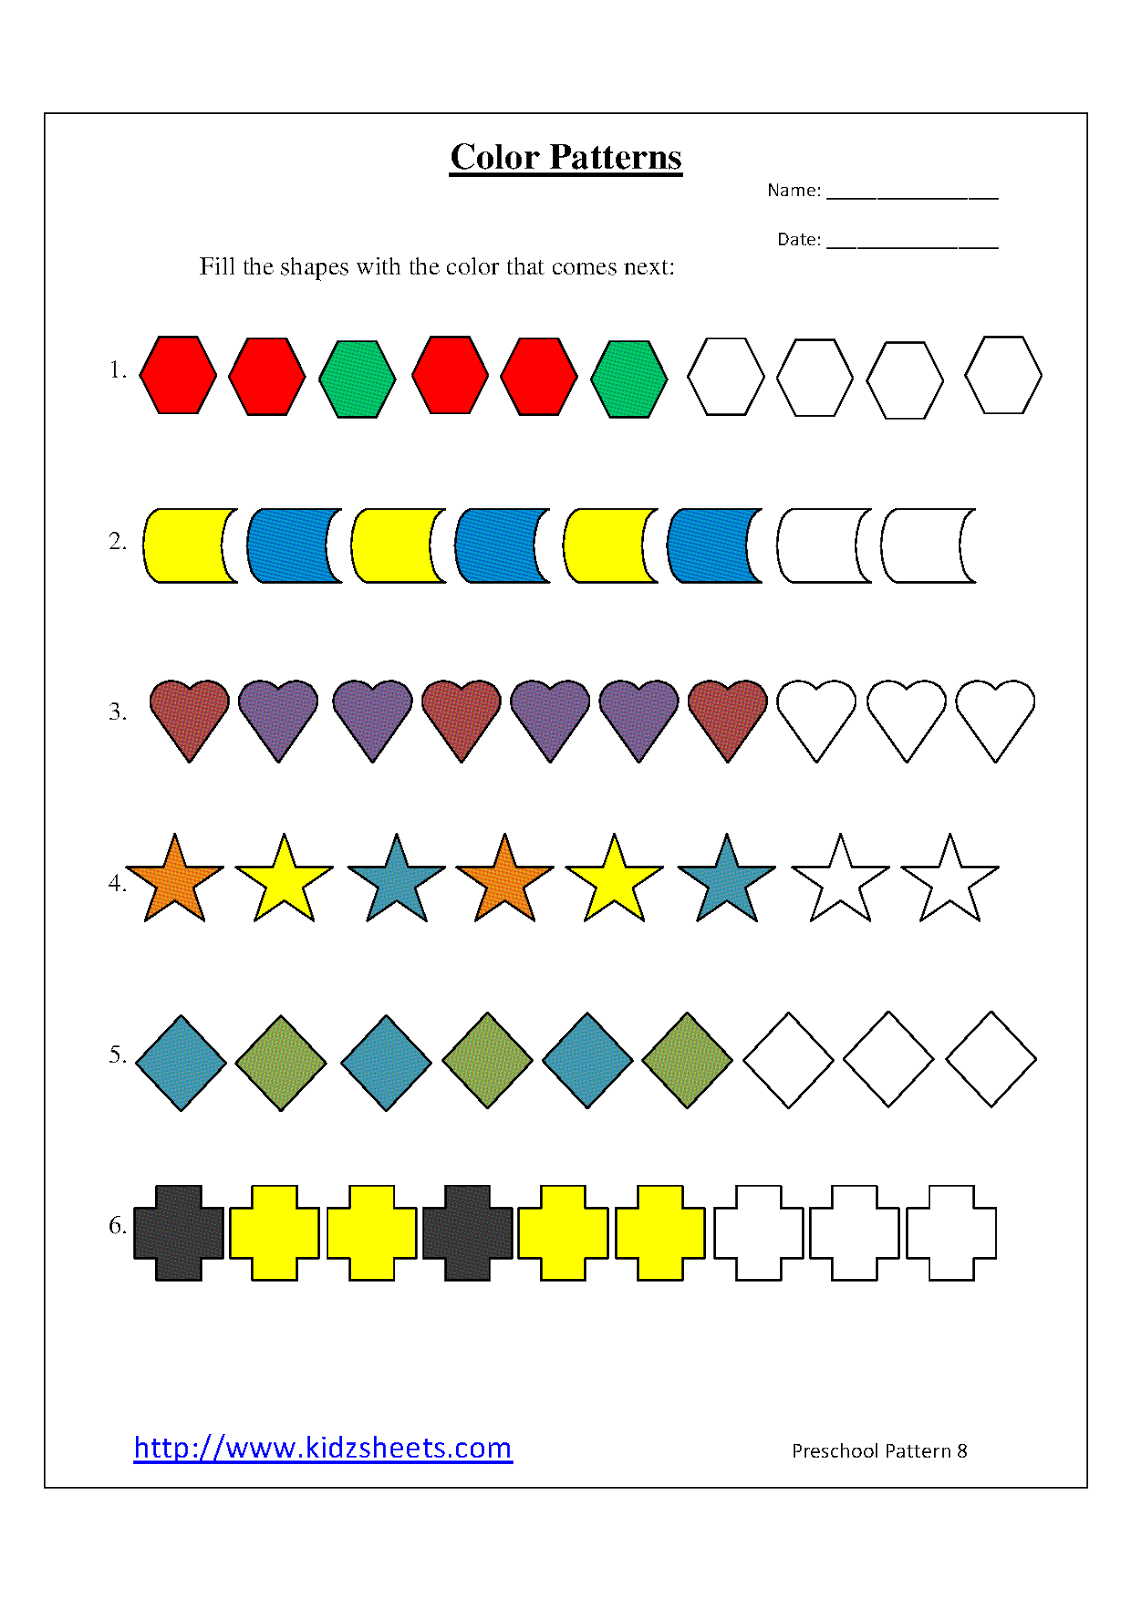 Kindergarten Pattern Worksheets - Kindergarten [ 1600 x 1131 Pixel ]